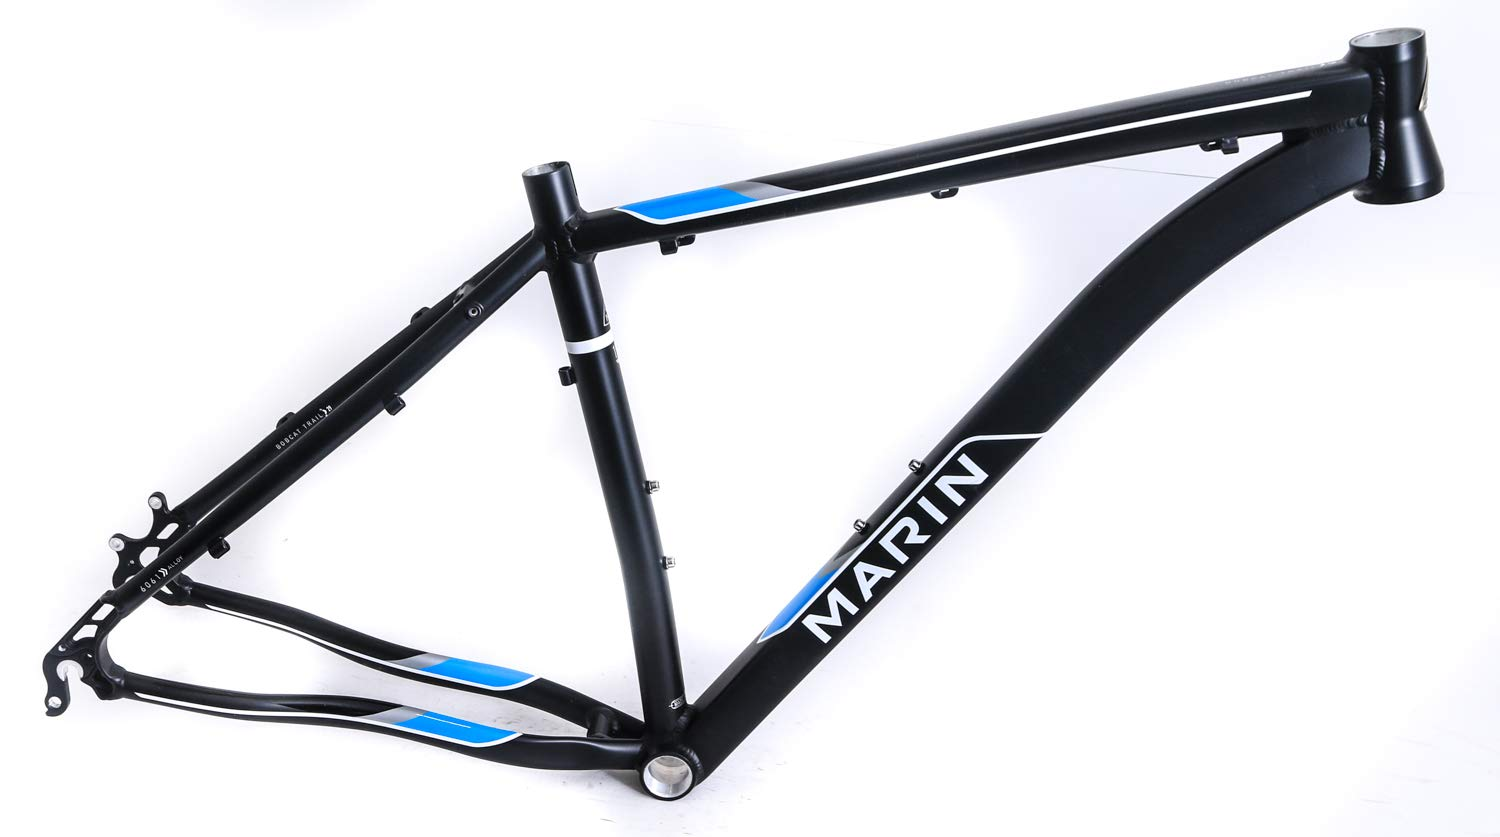 Marin 17'' Bobcat Trail 29er Hardtail MTB Bike Frame Aluminum Disc New